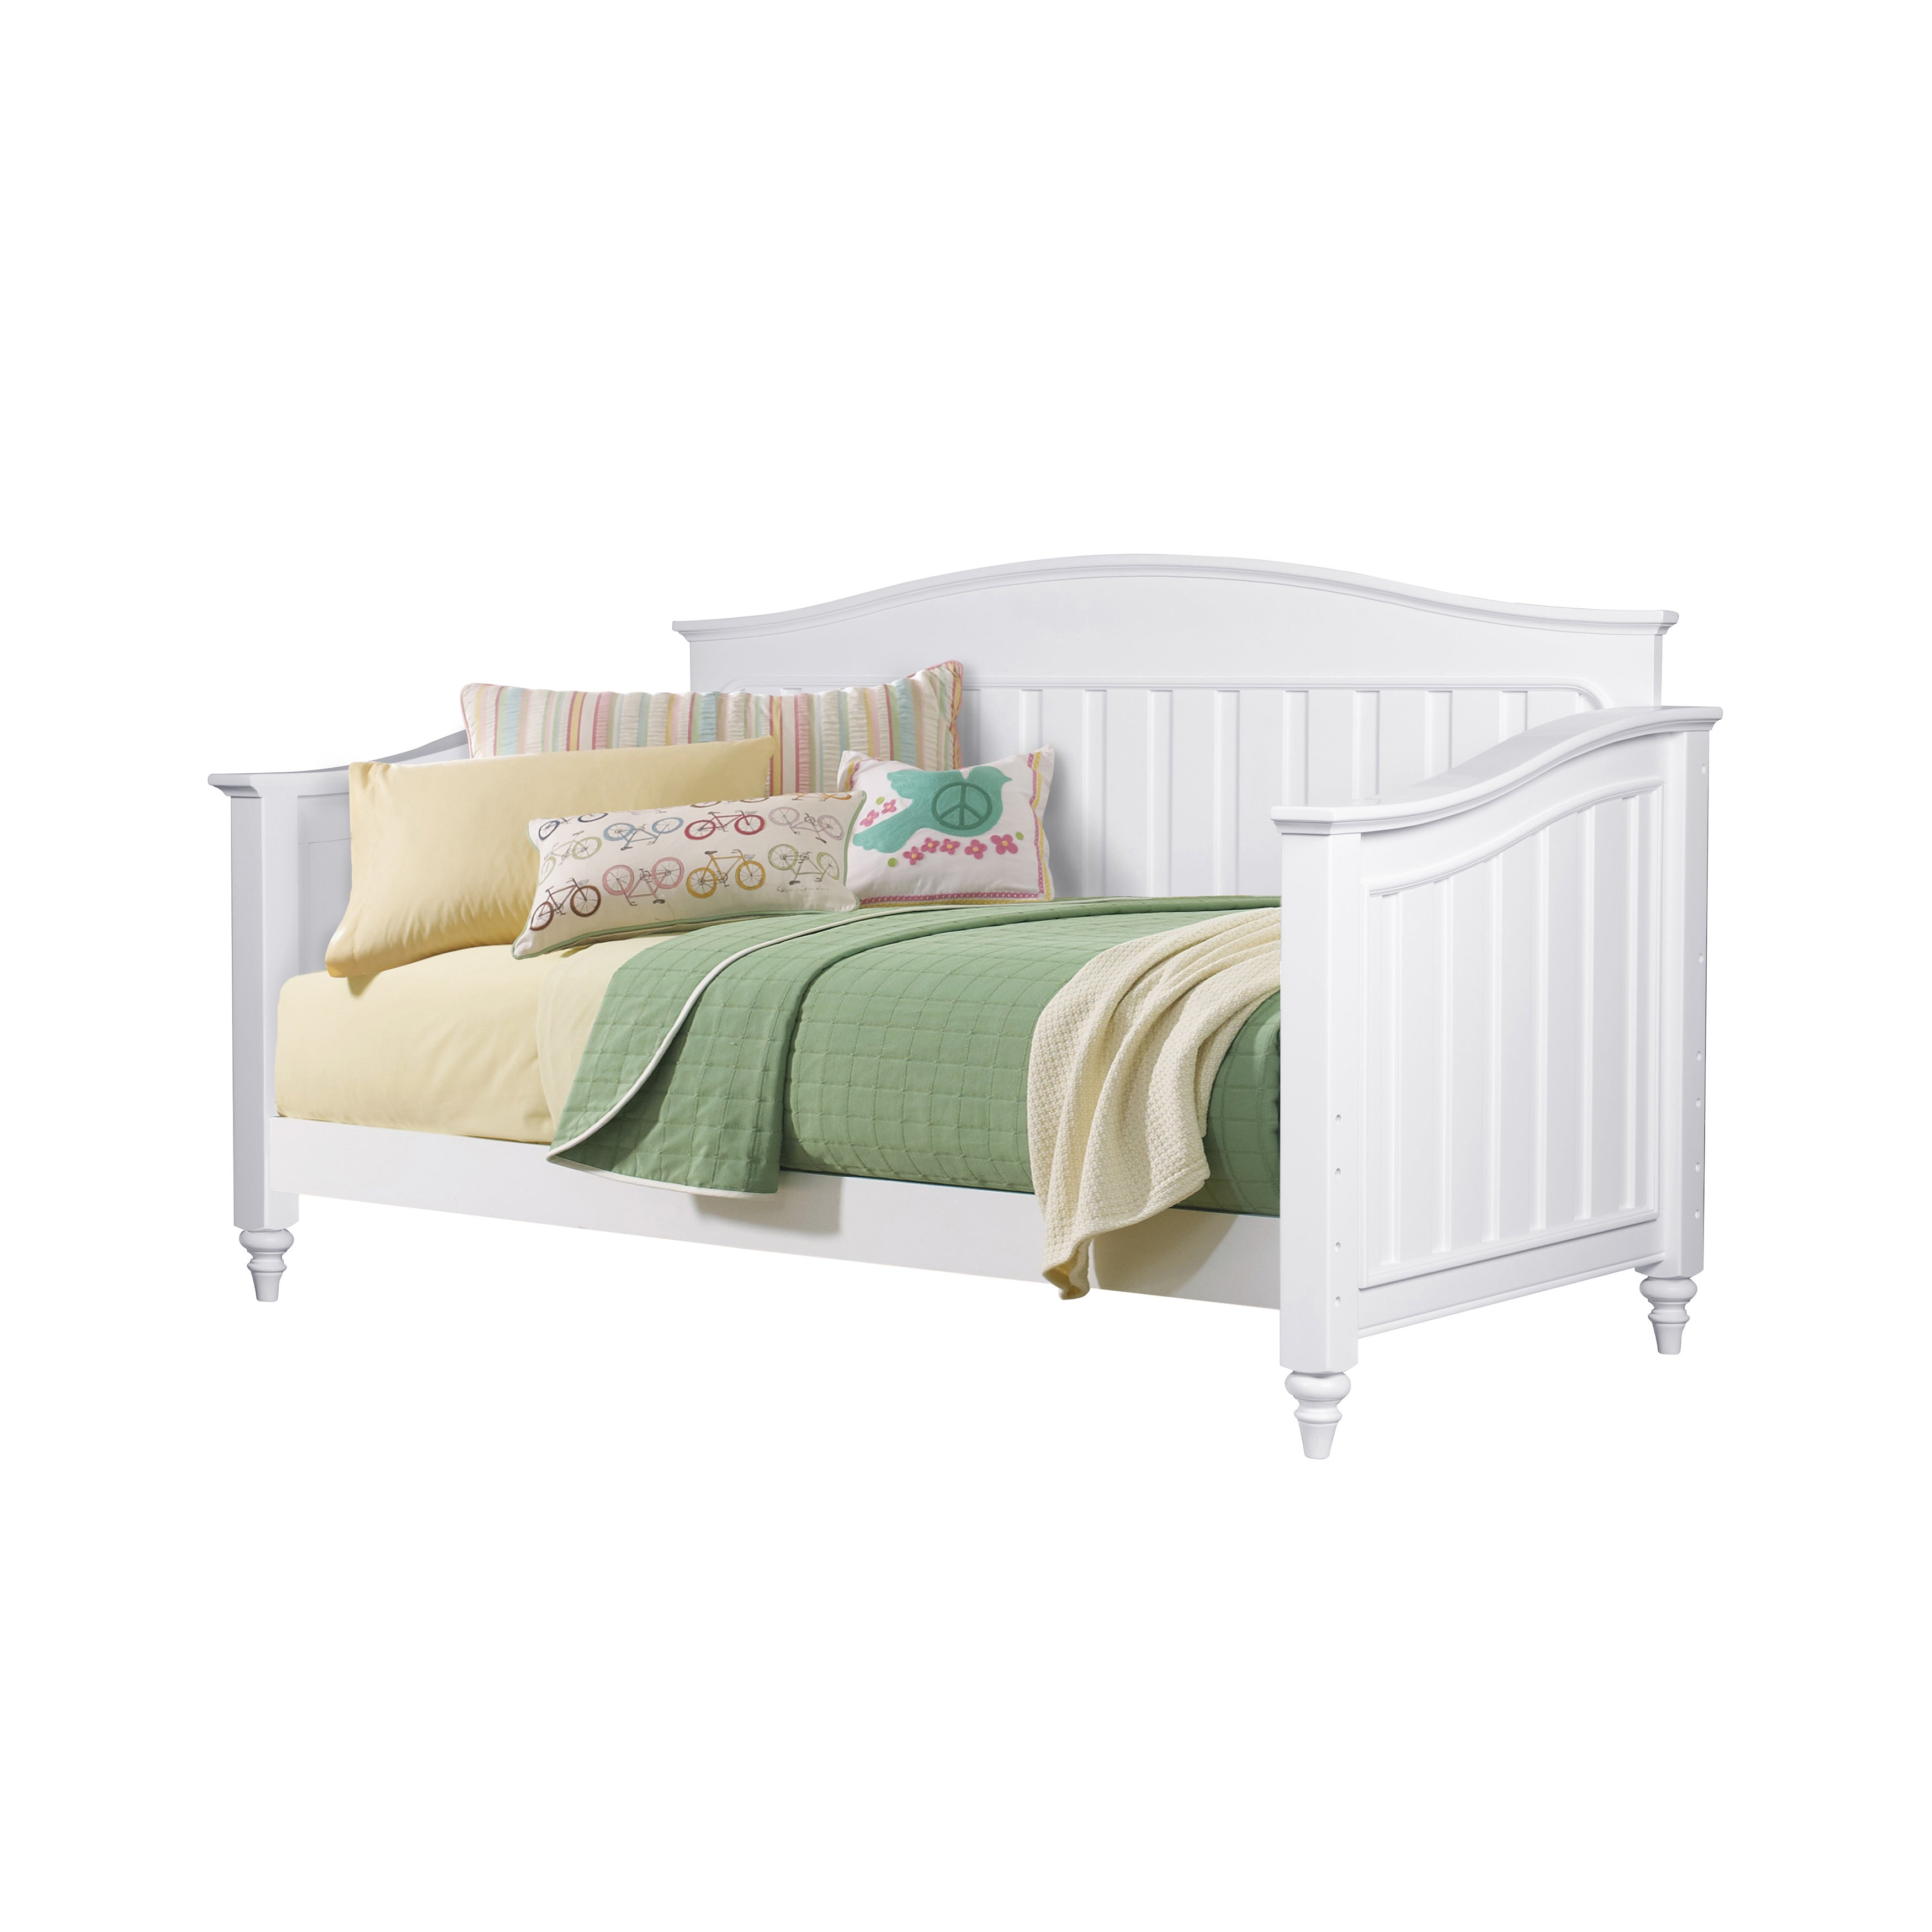 Lawrence Schools Out White Wood Day Bed (Color: White), S...